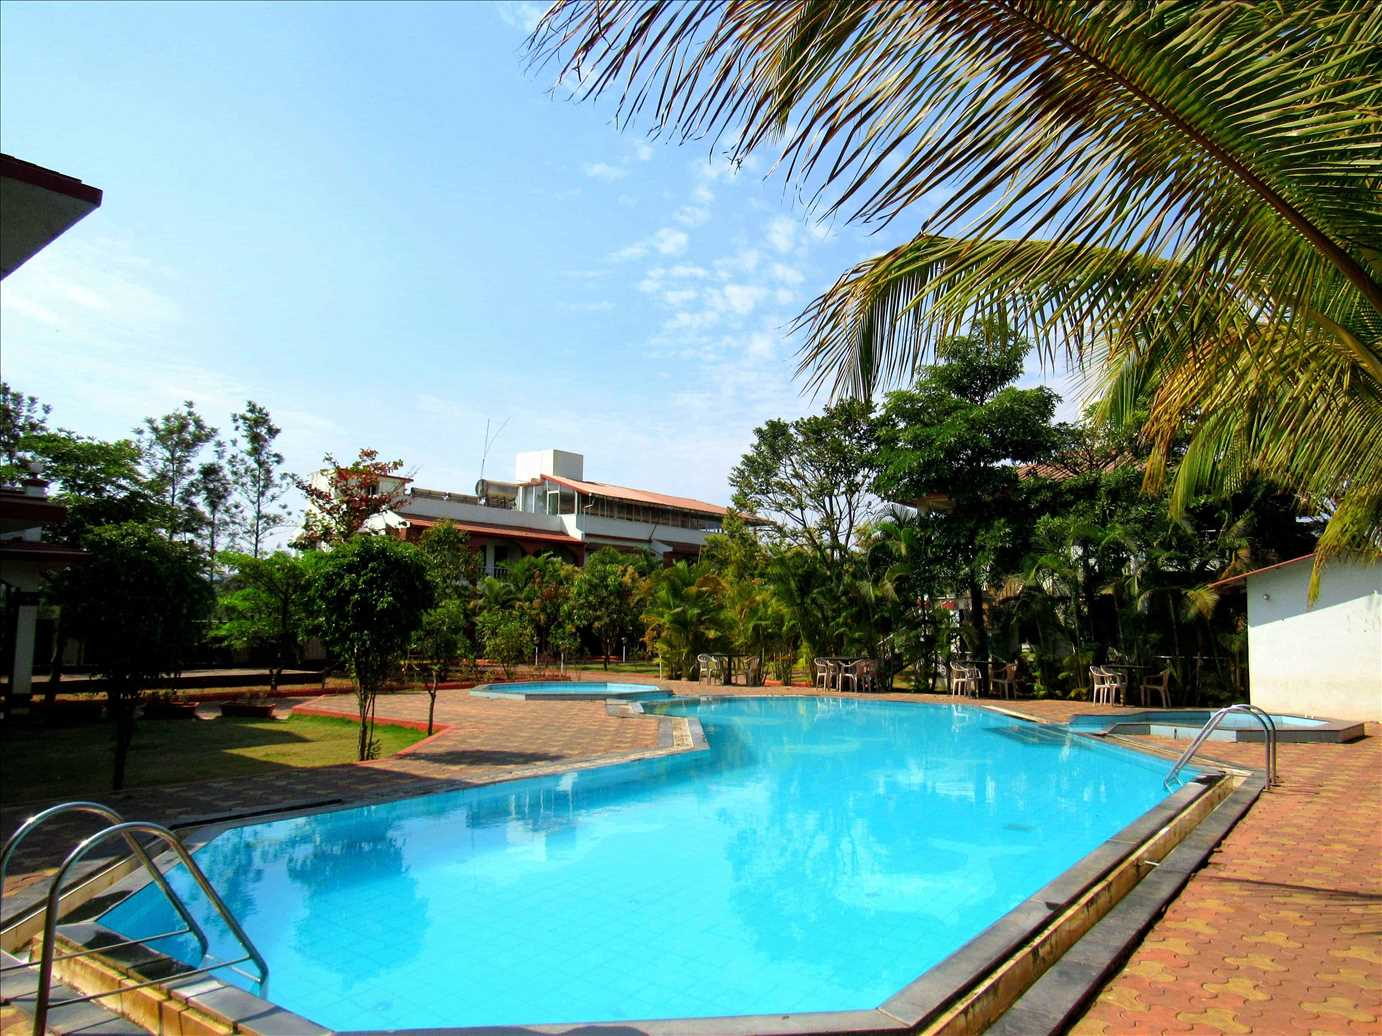 govinda-resorts-swimming-pool-view